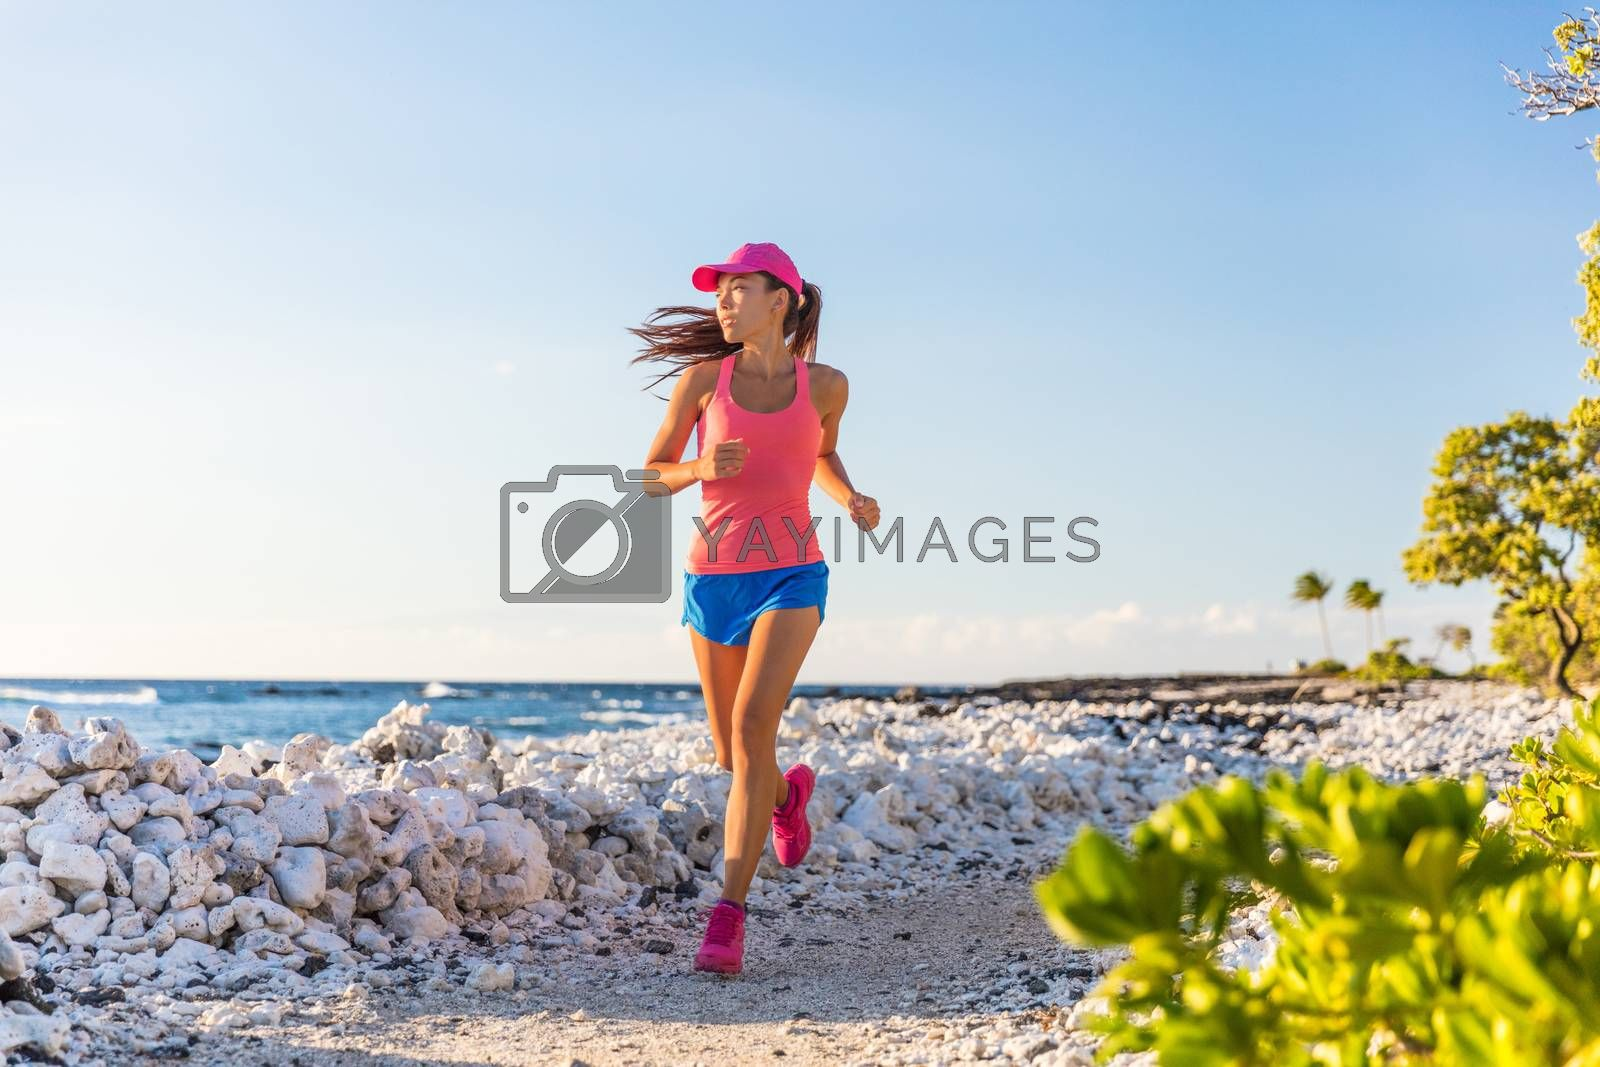 Healthy active runner girl running on beach trail path of coral rocks in Hawaii, morning training alone.